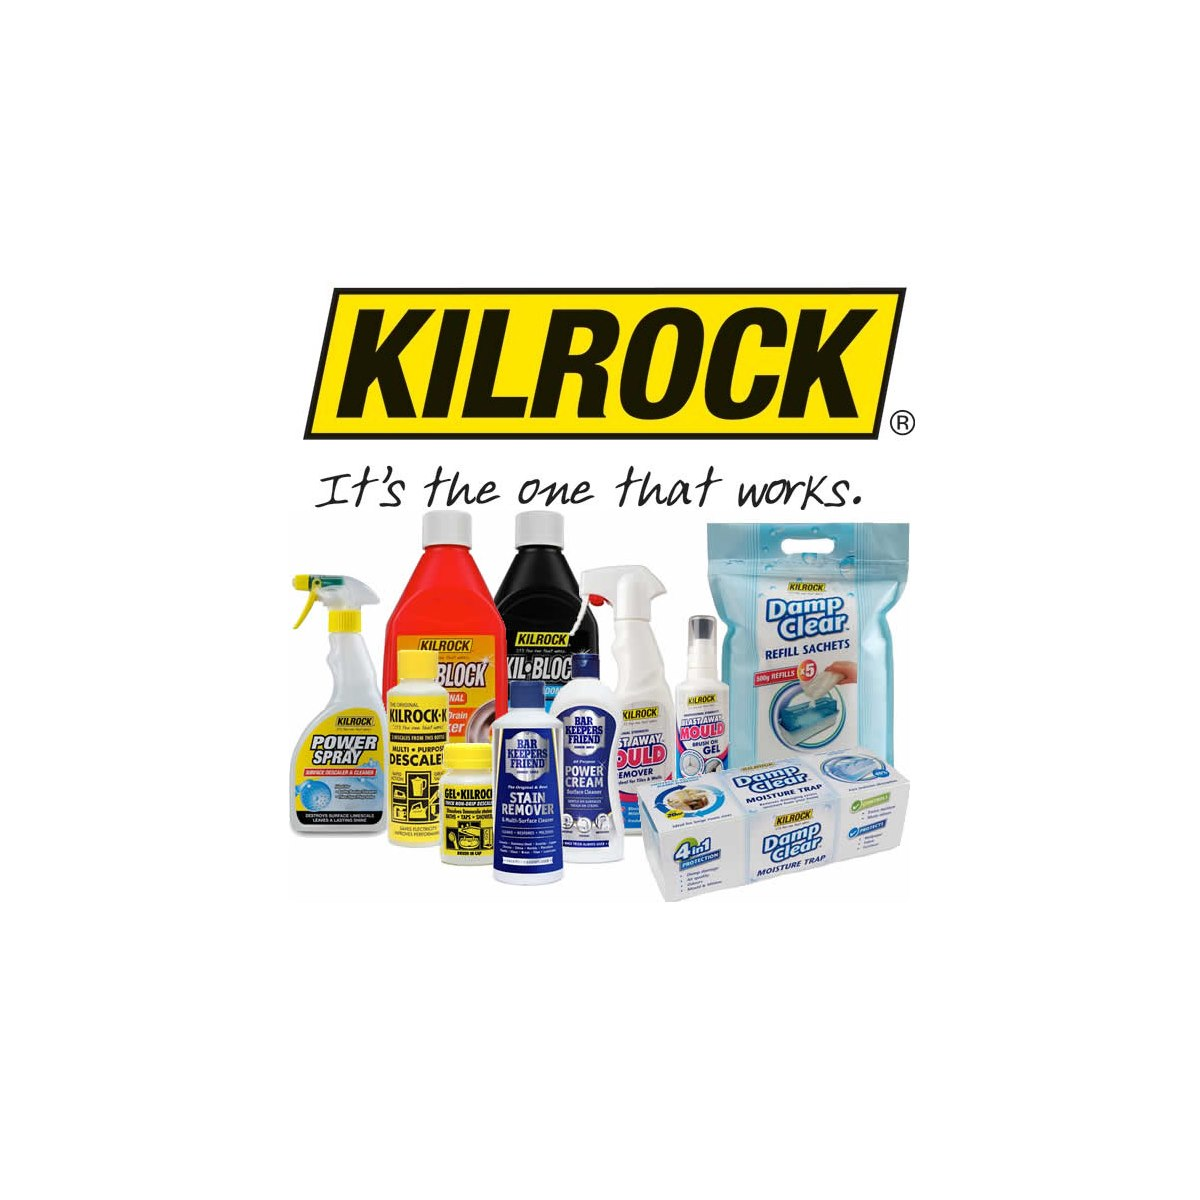 Where to Buy Kilrock Products